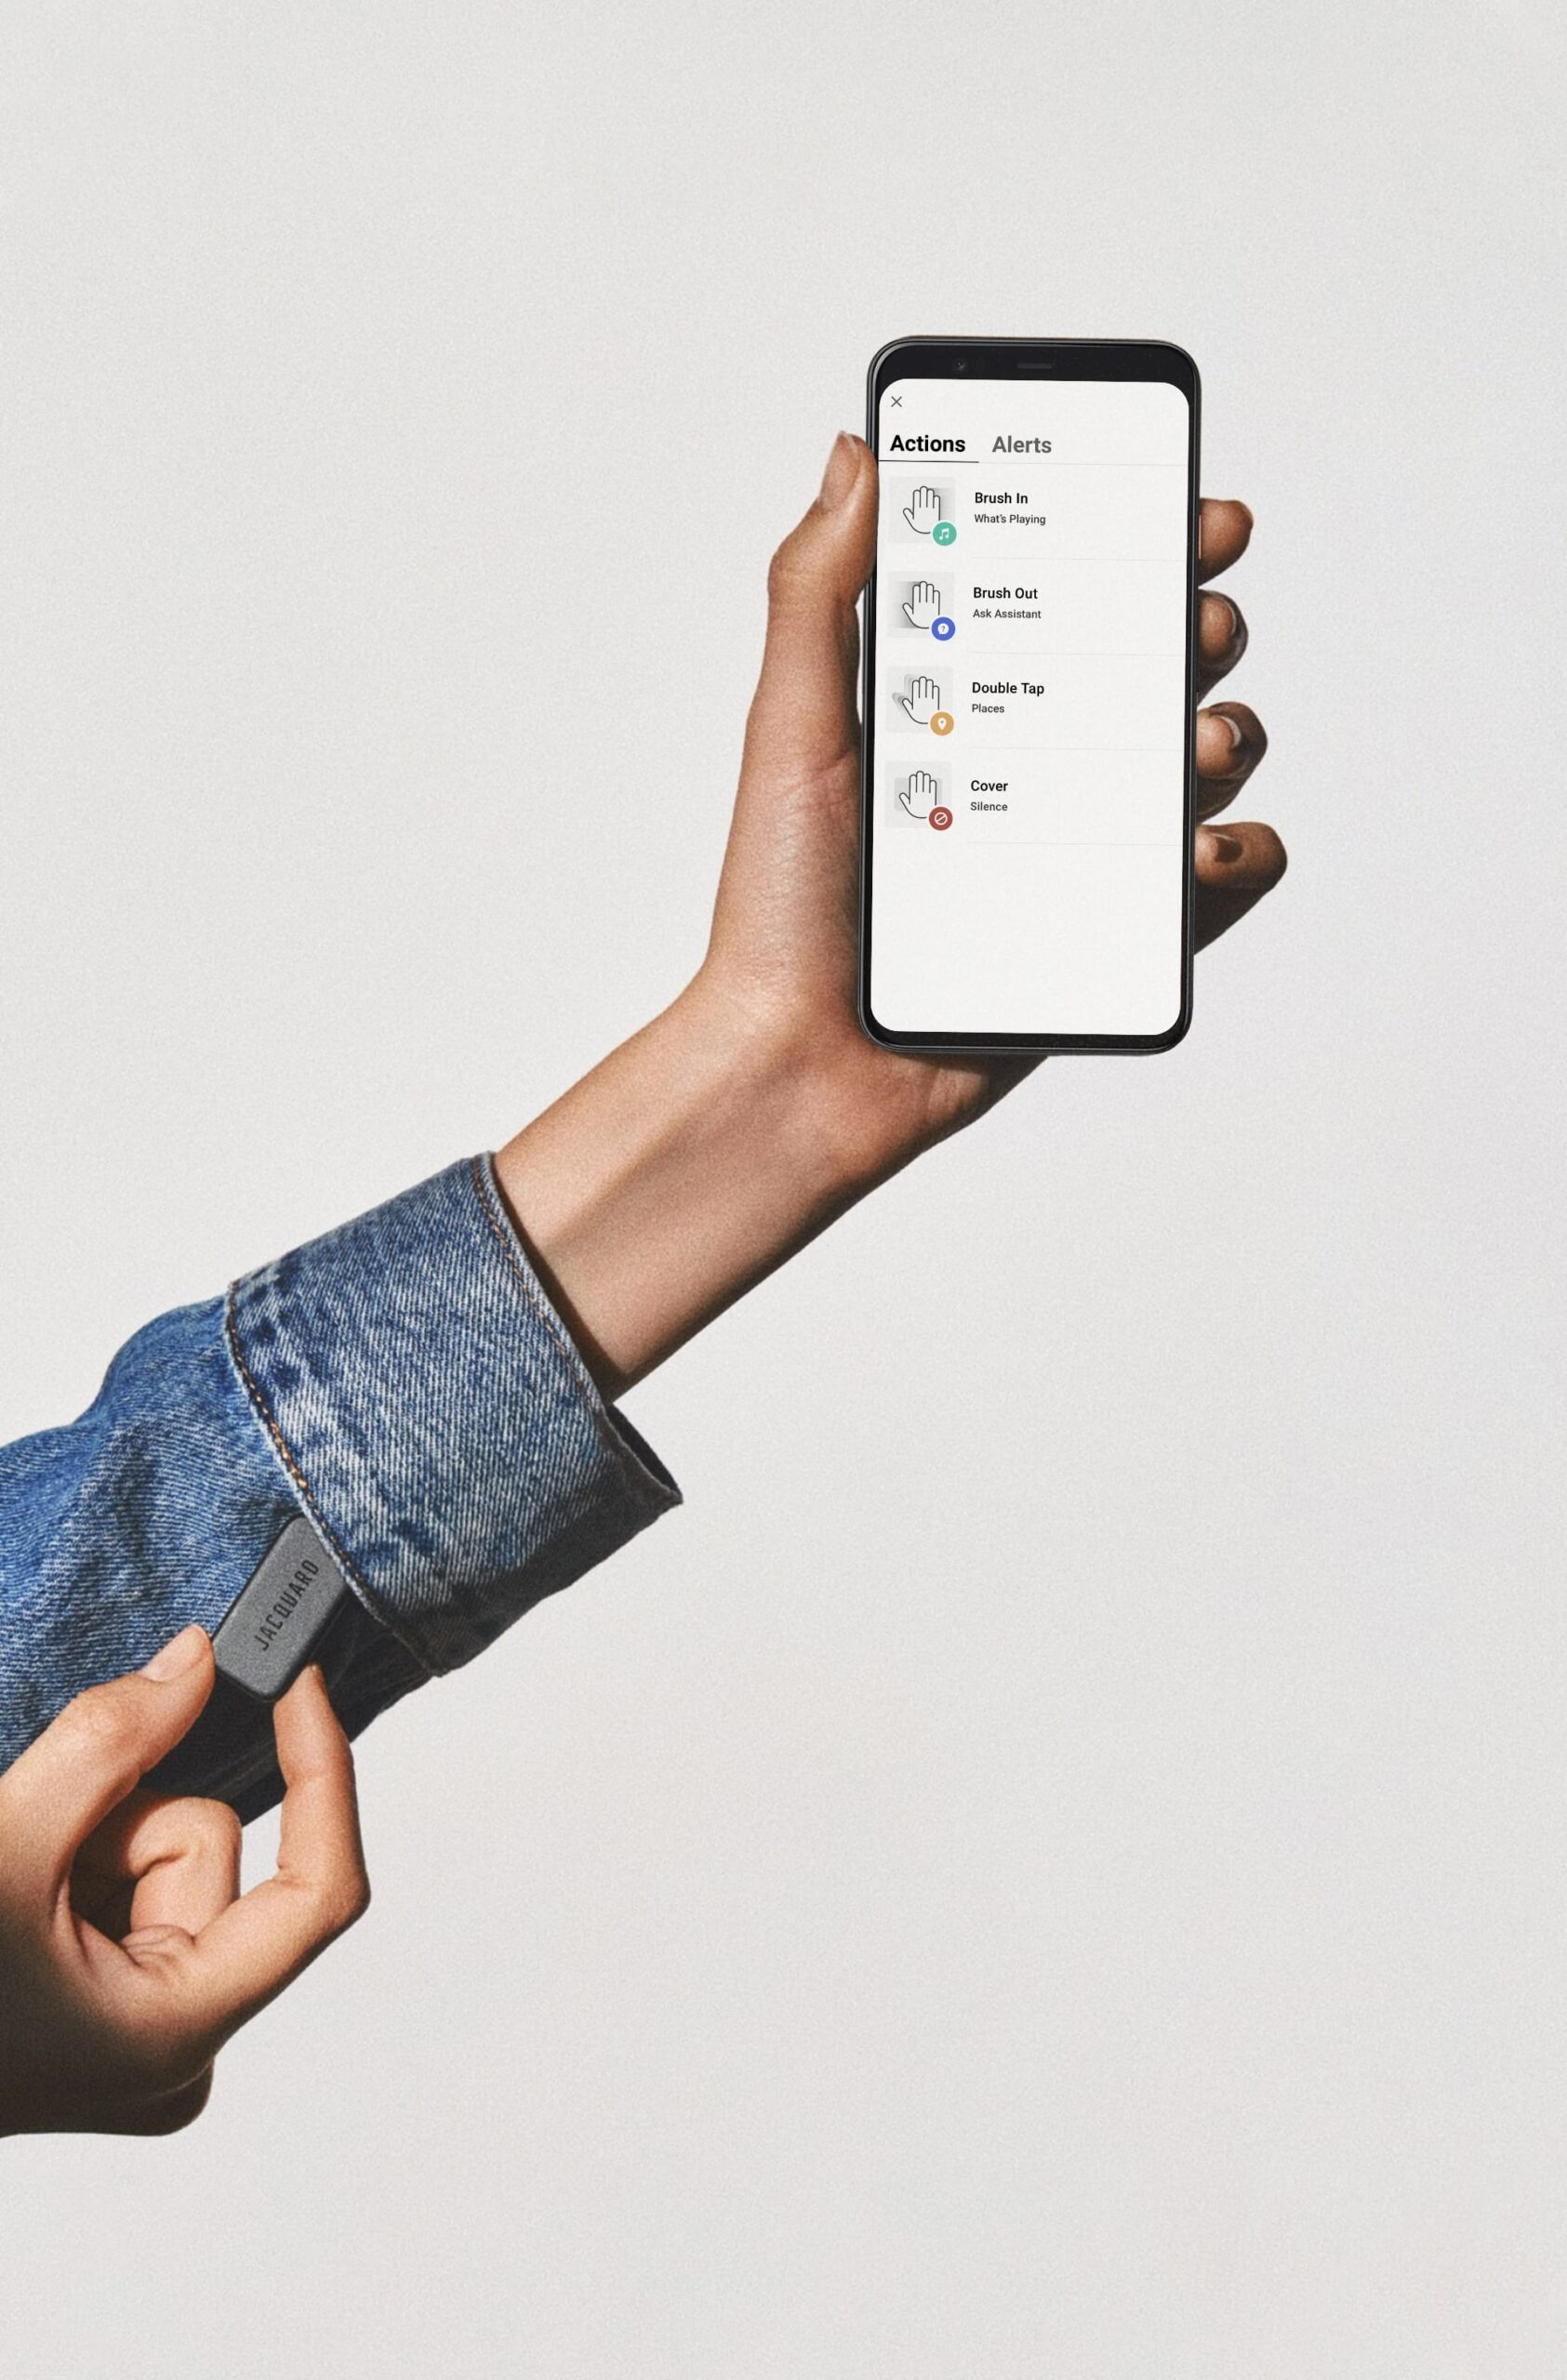 Photo of Jaquard assistive technology device being held next to an insertion point in a jacket cuff; another hand holds a smartphone.